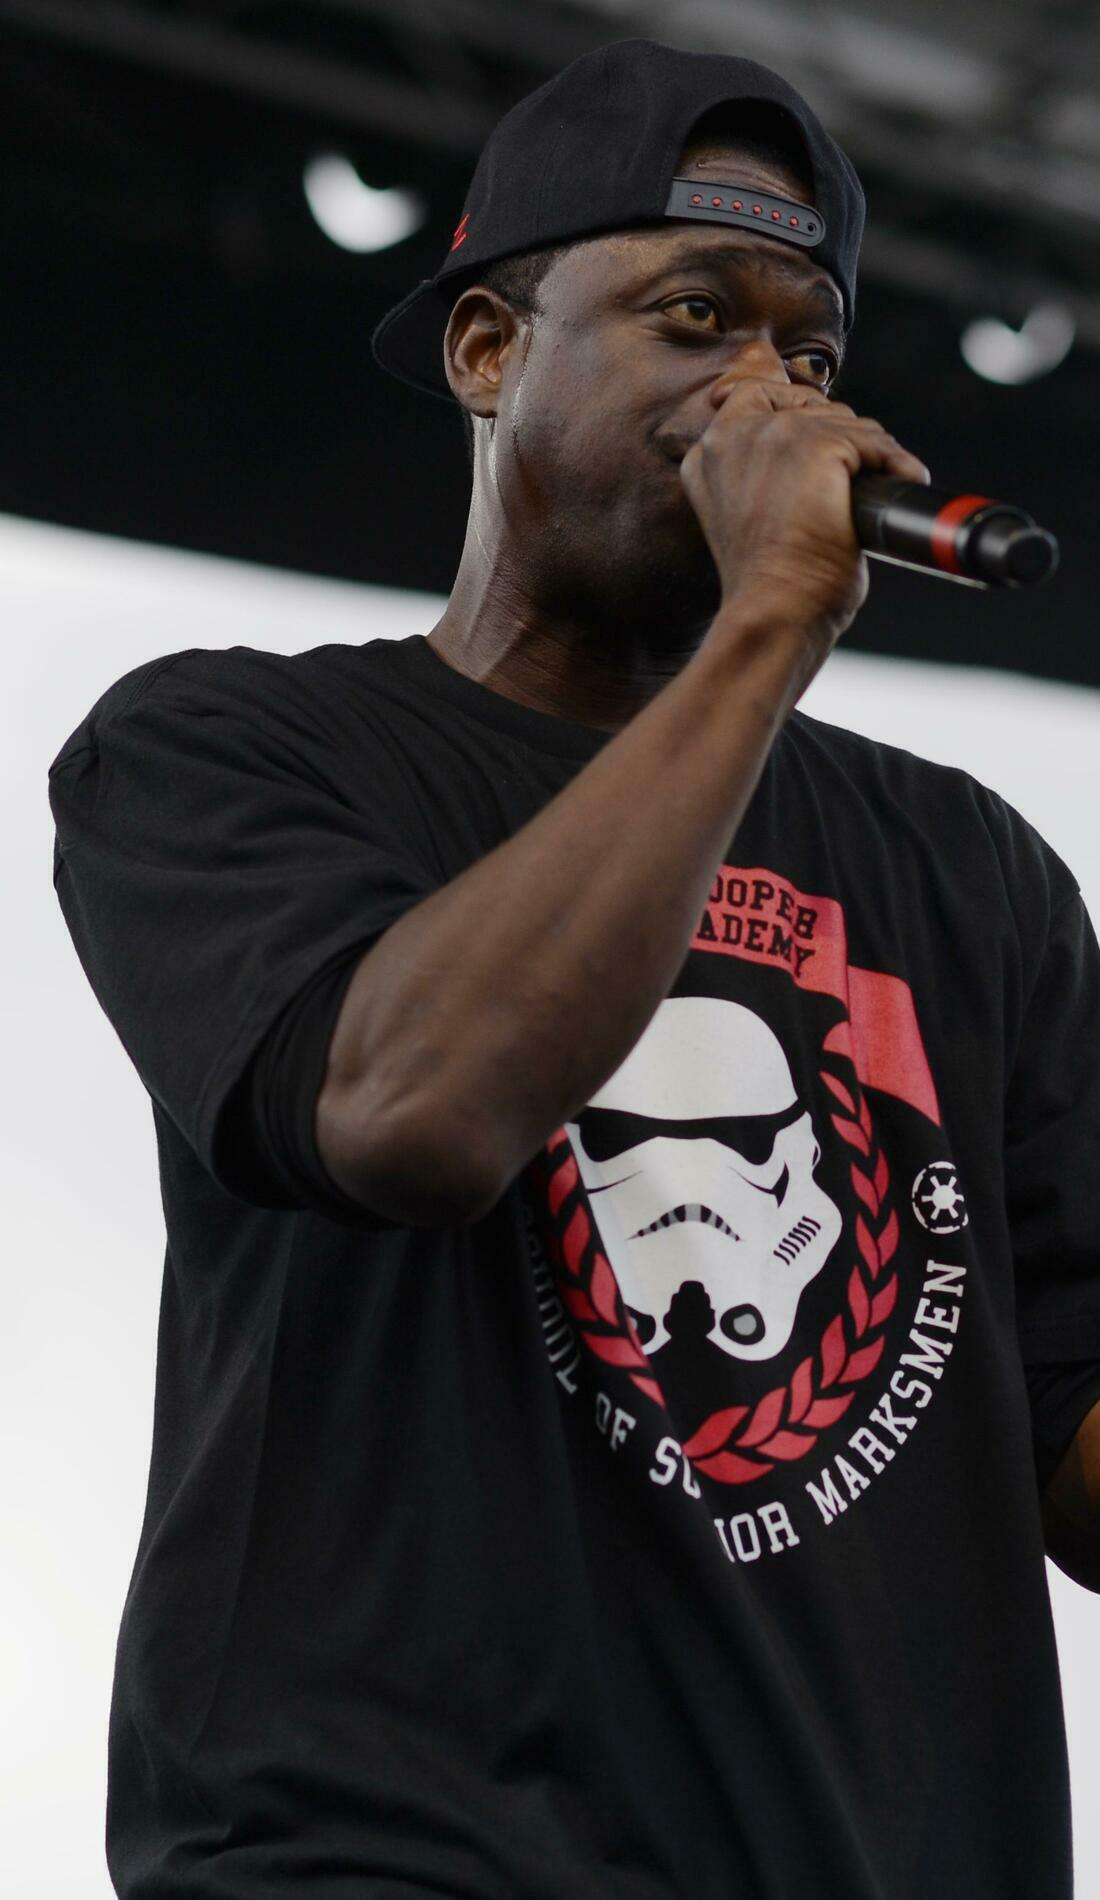 A Devin the Dude live event